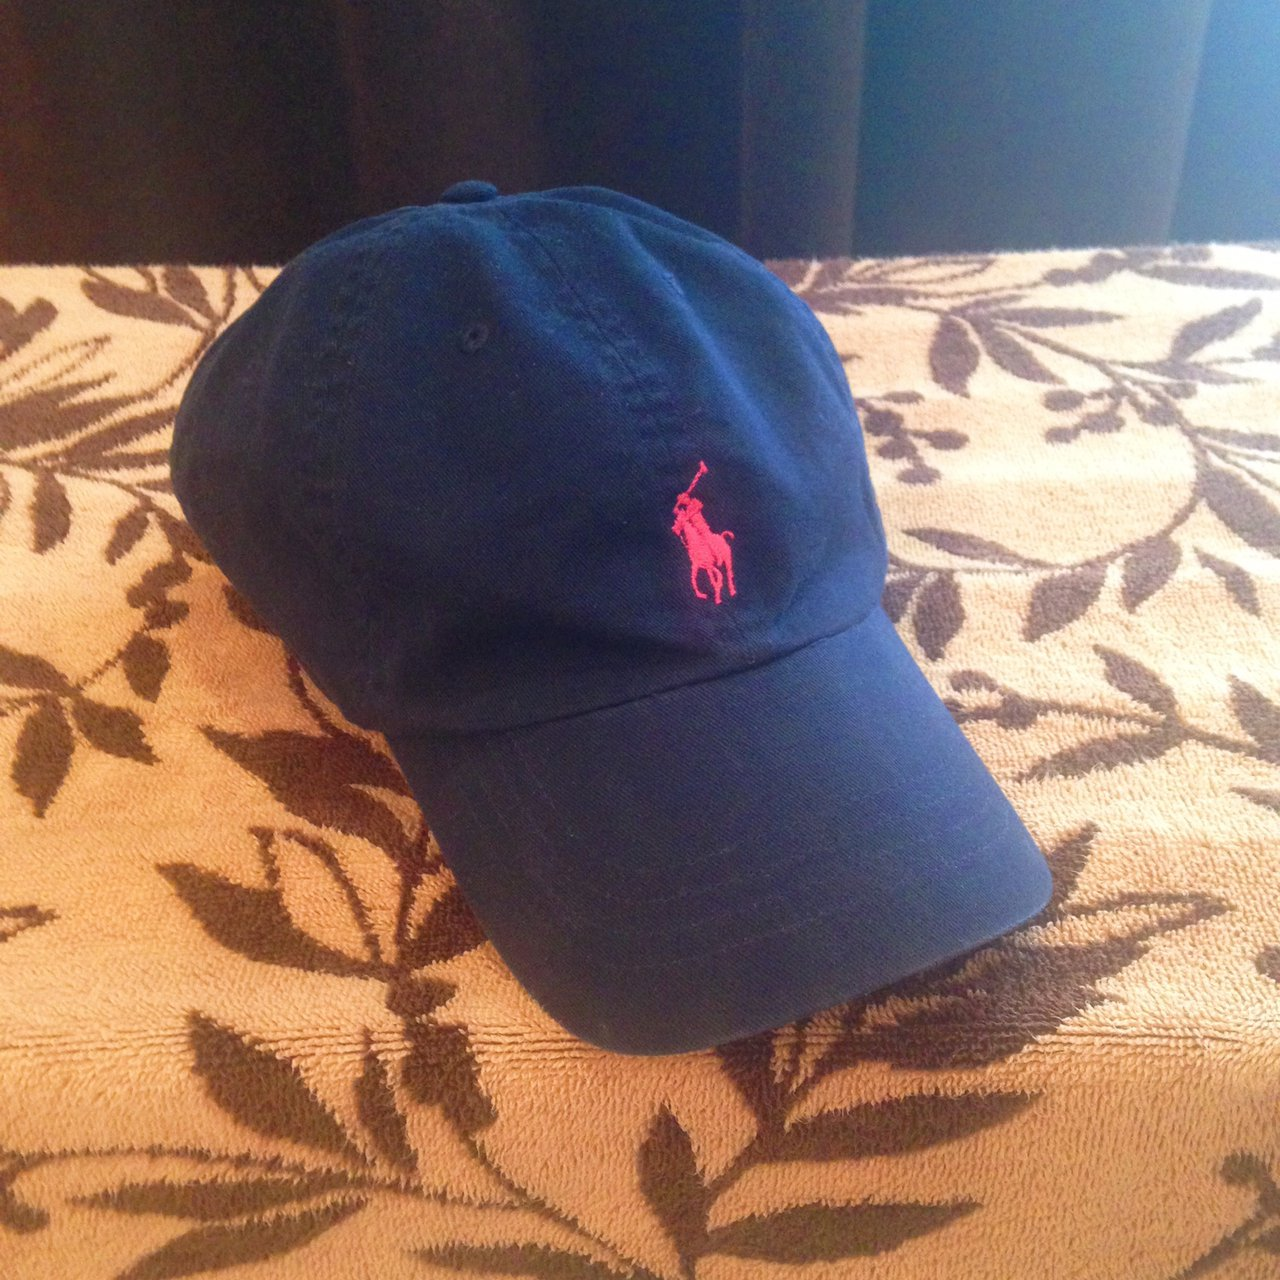 Vintage Ralph Lauren Polo Hat   Leather strap   Rare Blue - Depop 8207b771a193